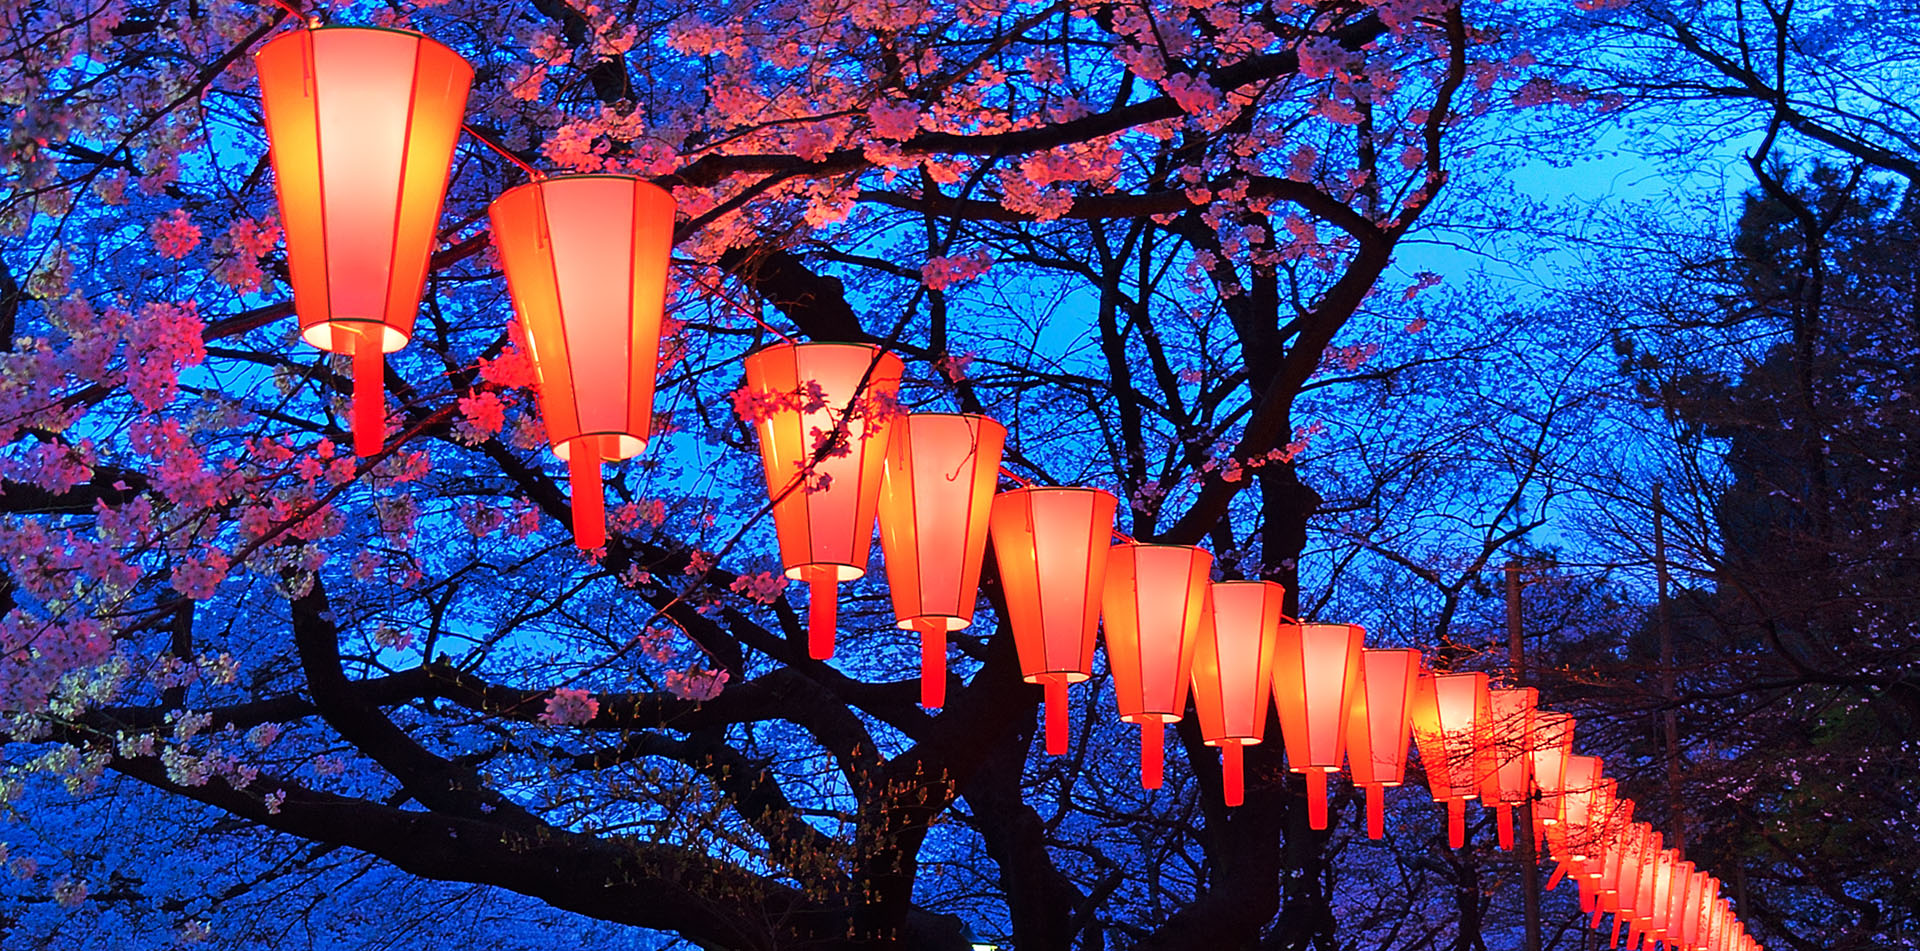 Cherry Blossoms and Lanterns in Tokyo, Japan